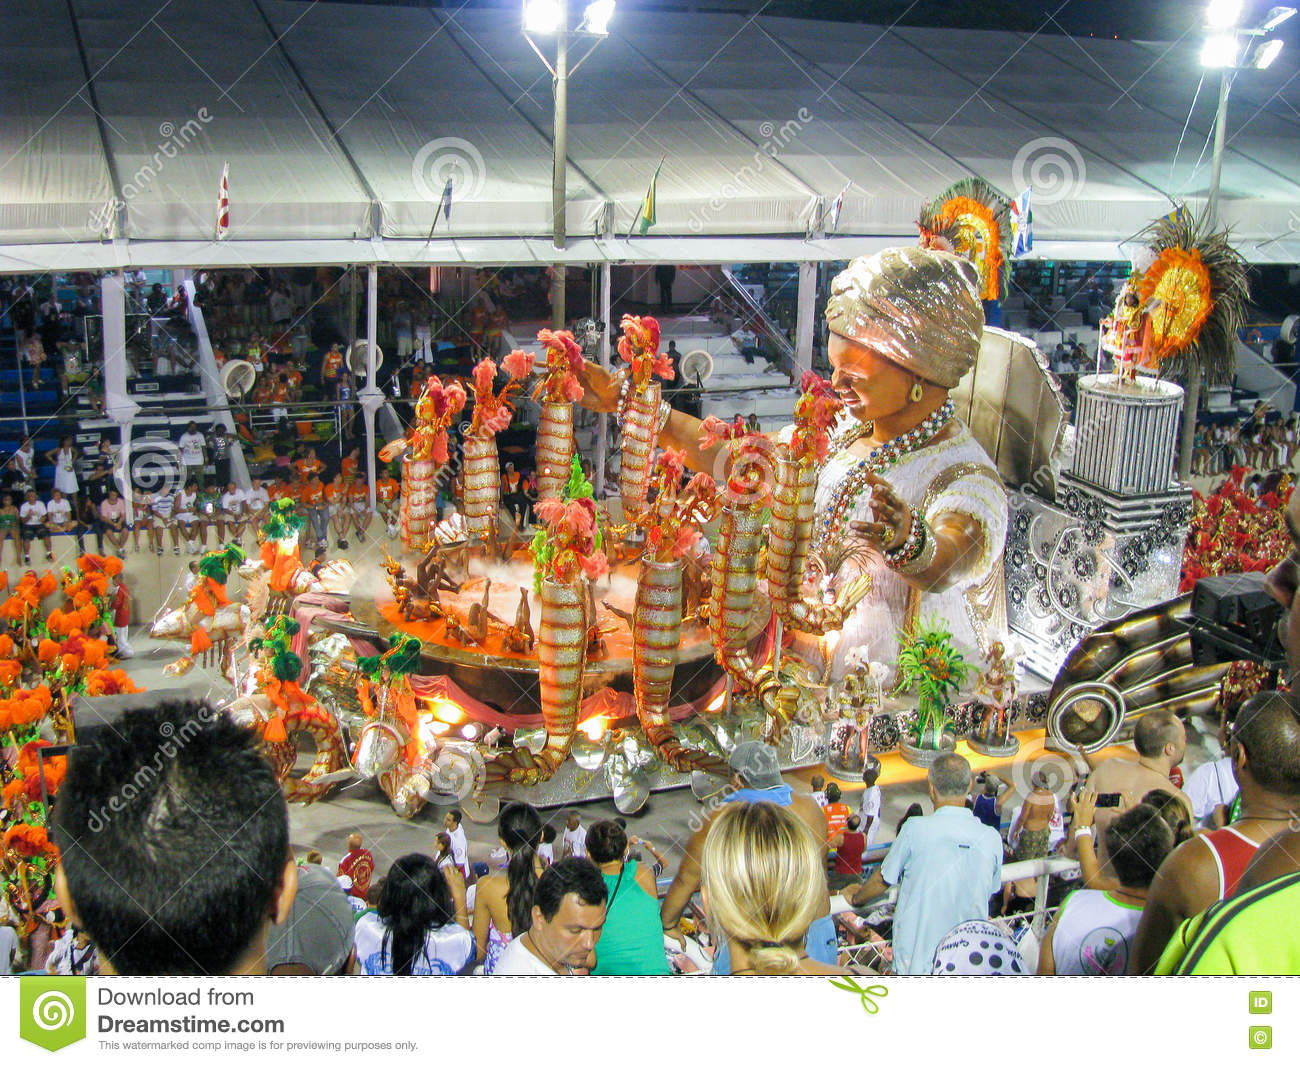 Amazing extravaganza during the annual Carnival in Rio de Janeiro